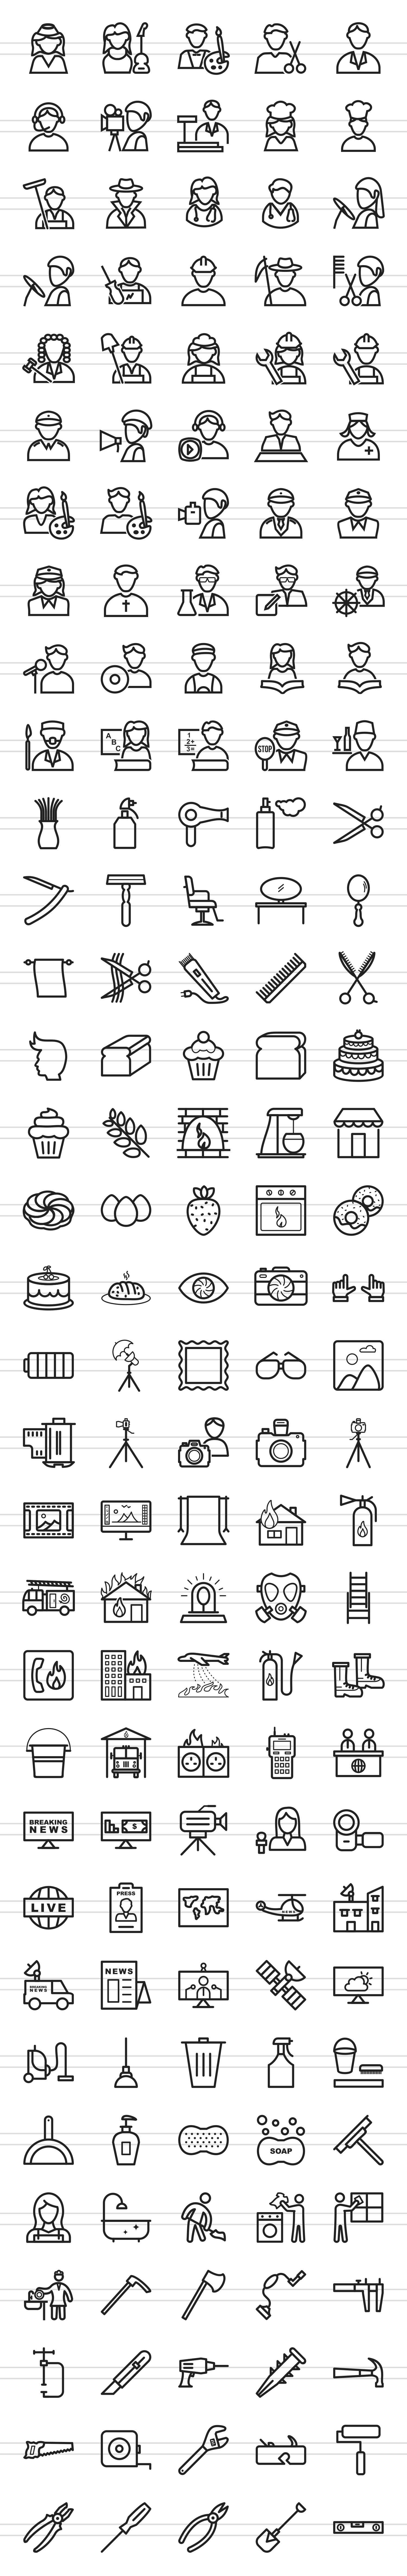 166 Professionals & their tools Line Icons example image 4